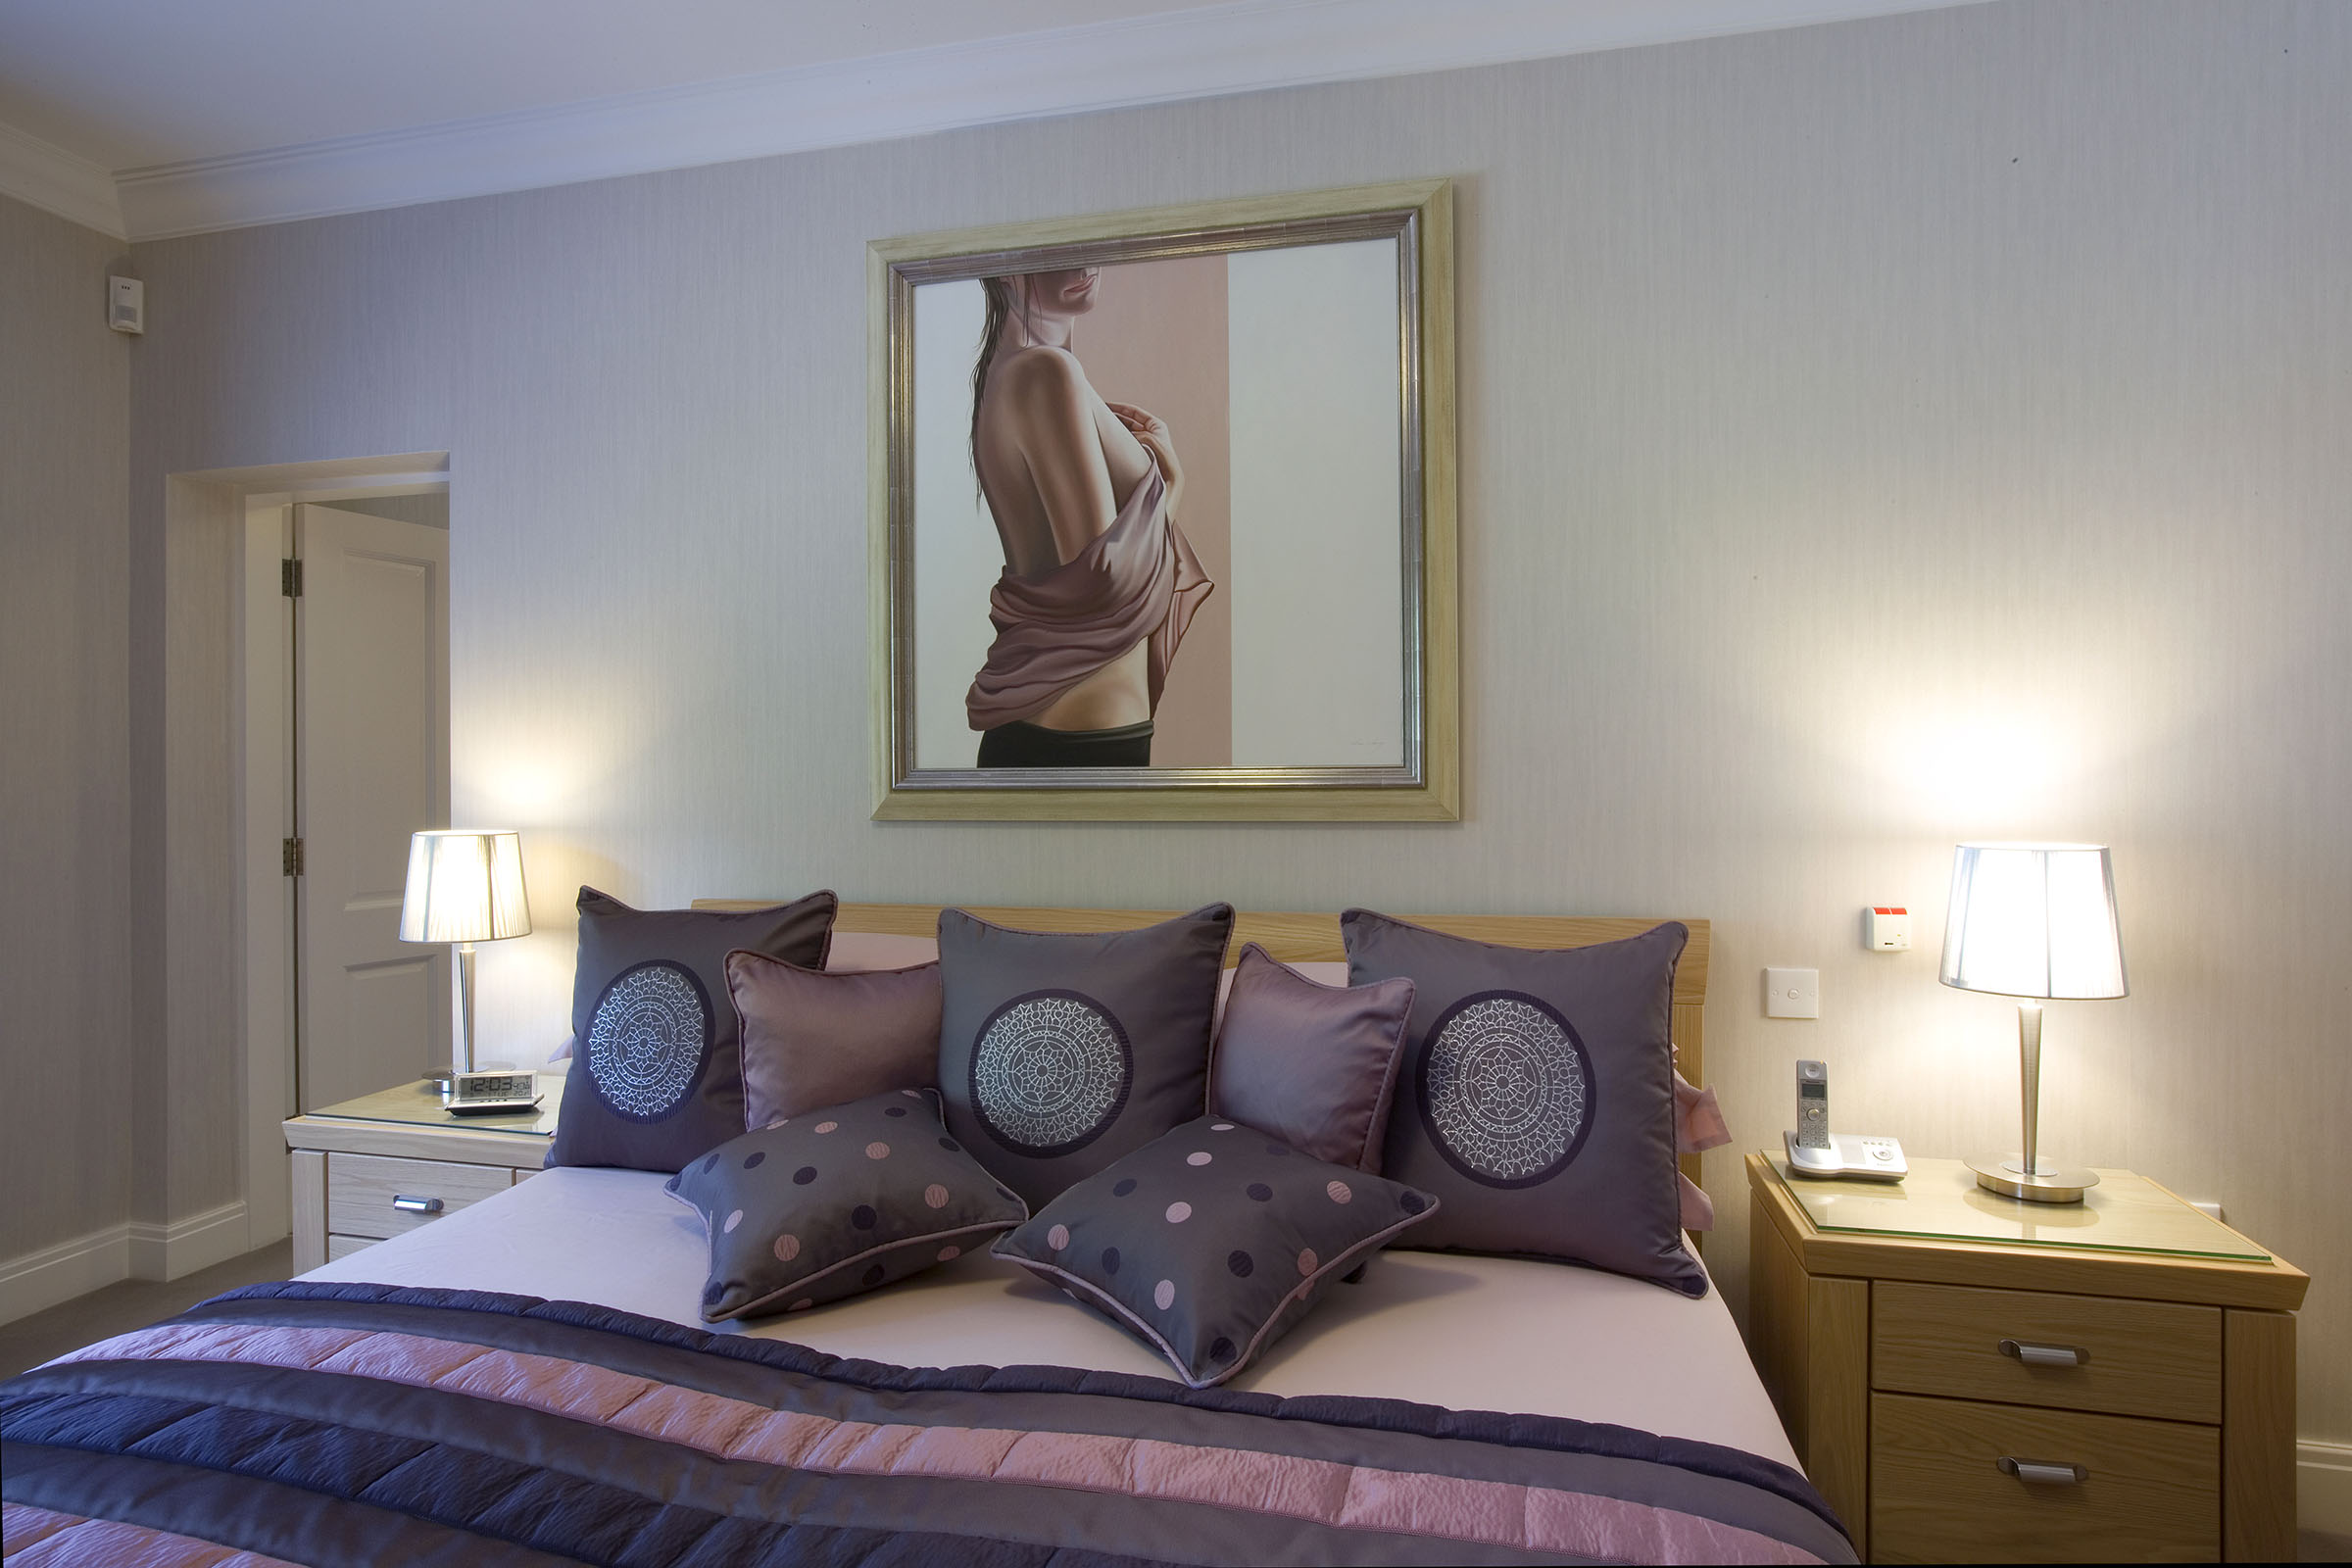 Bedroom with purple and mauve co-ordinating duvet cover and cushions